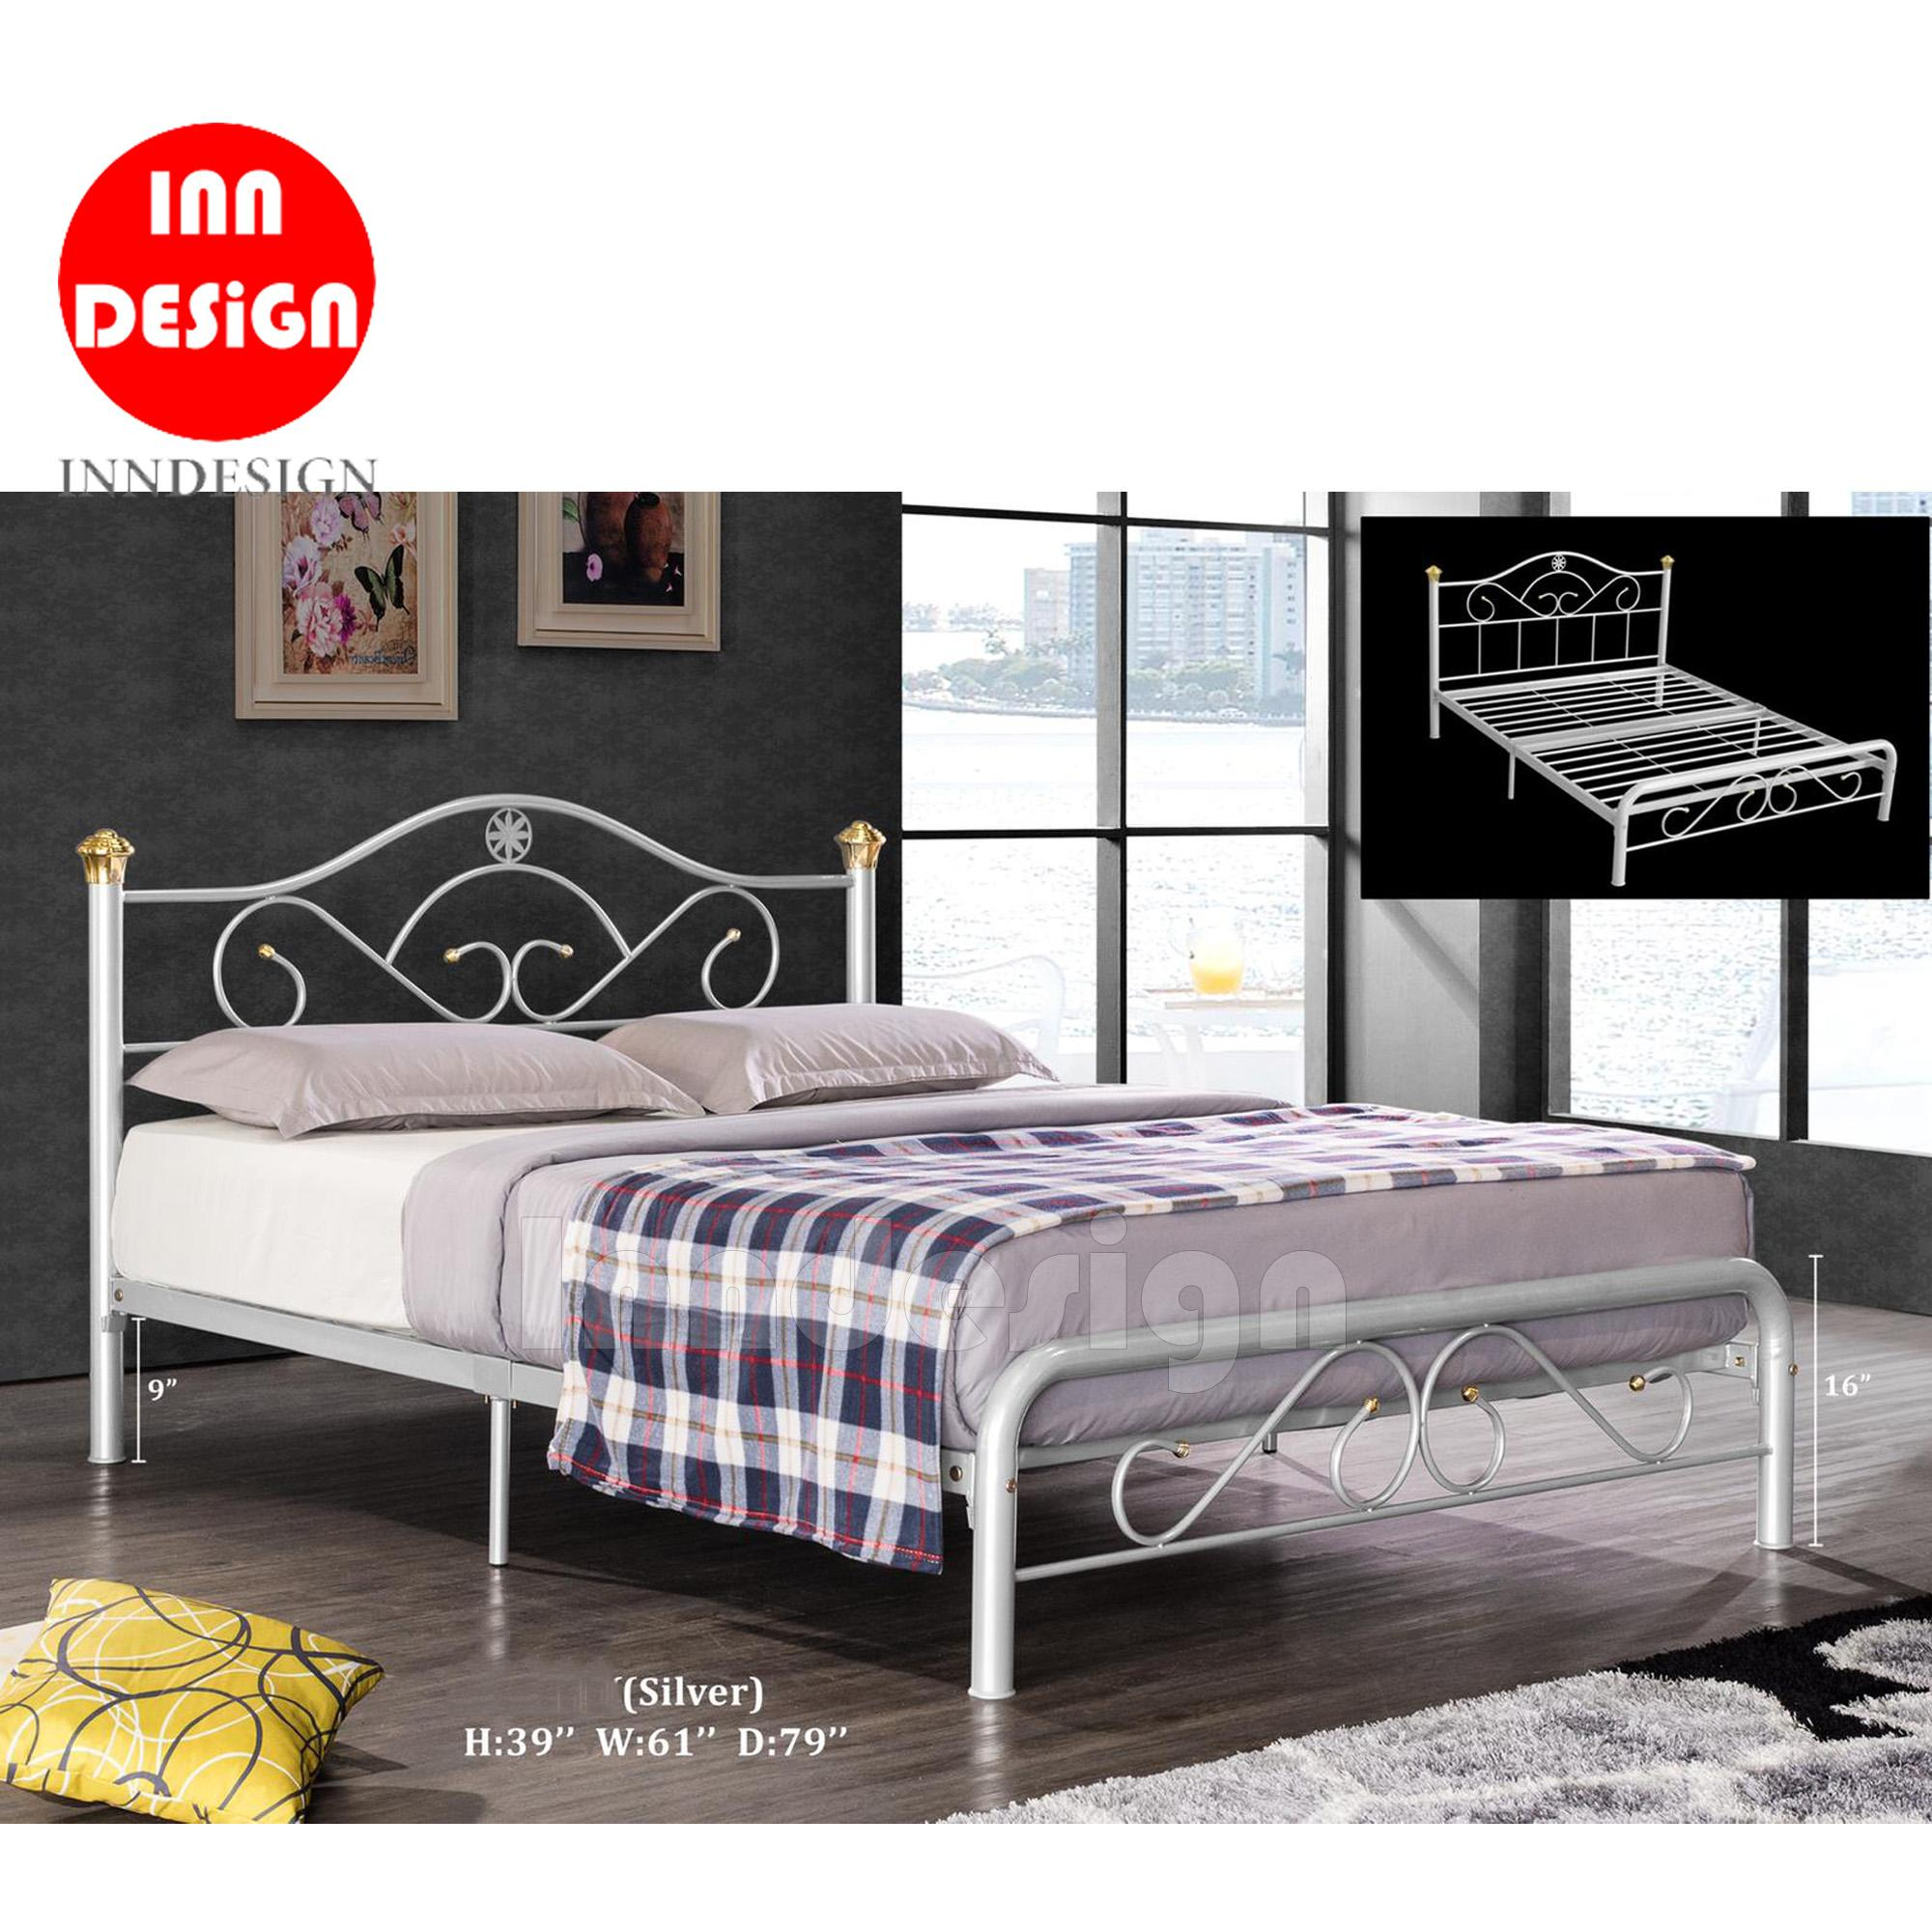 Queen Metal Bed / Metal Bed Frame (Silver)